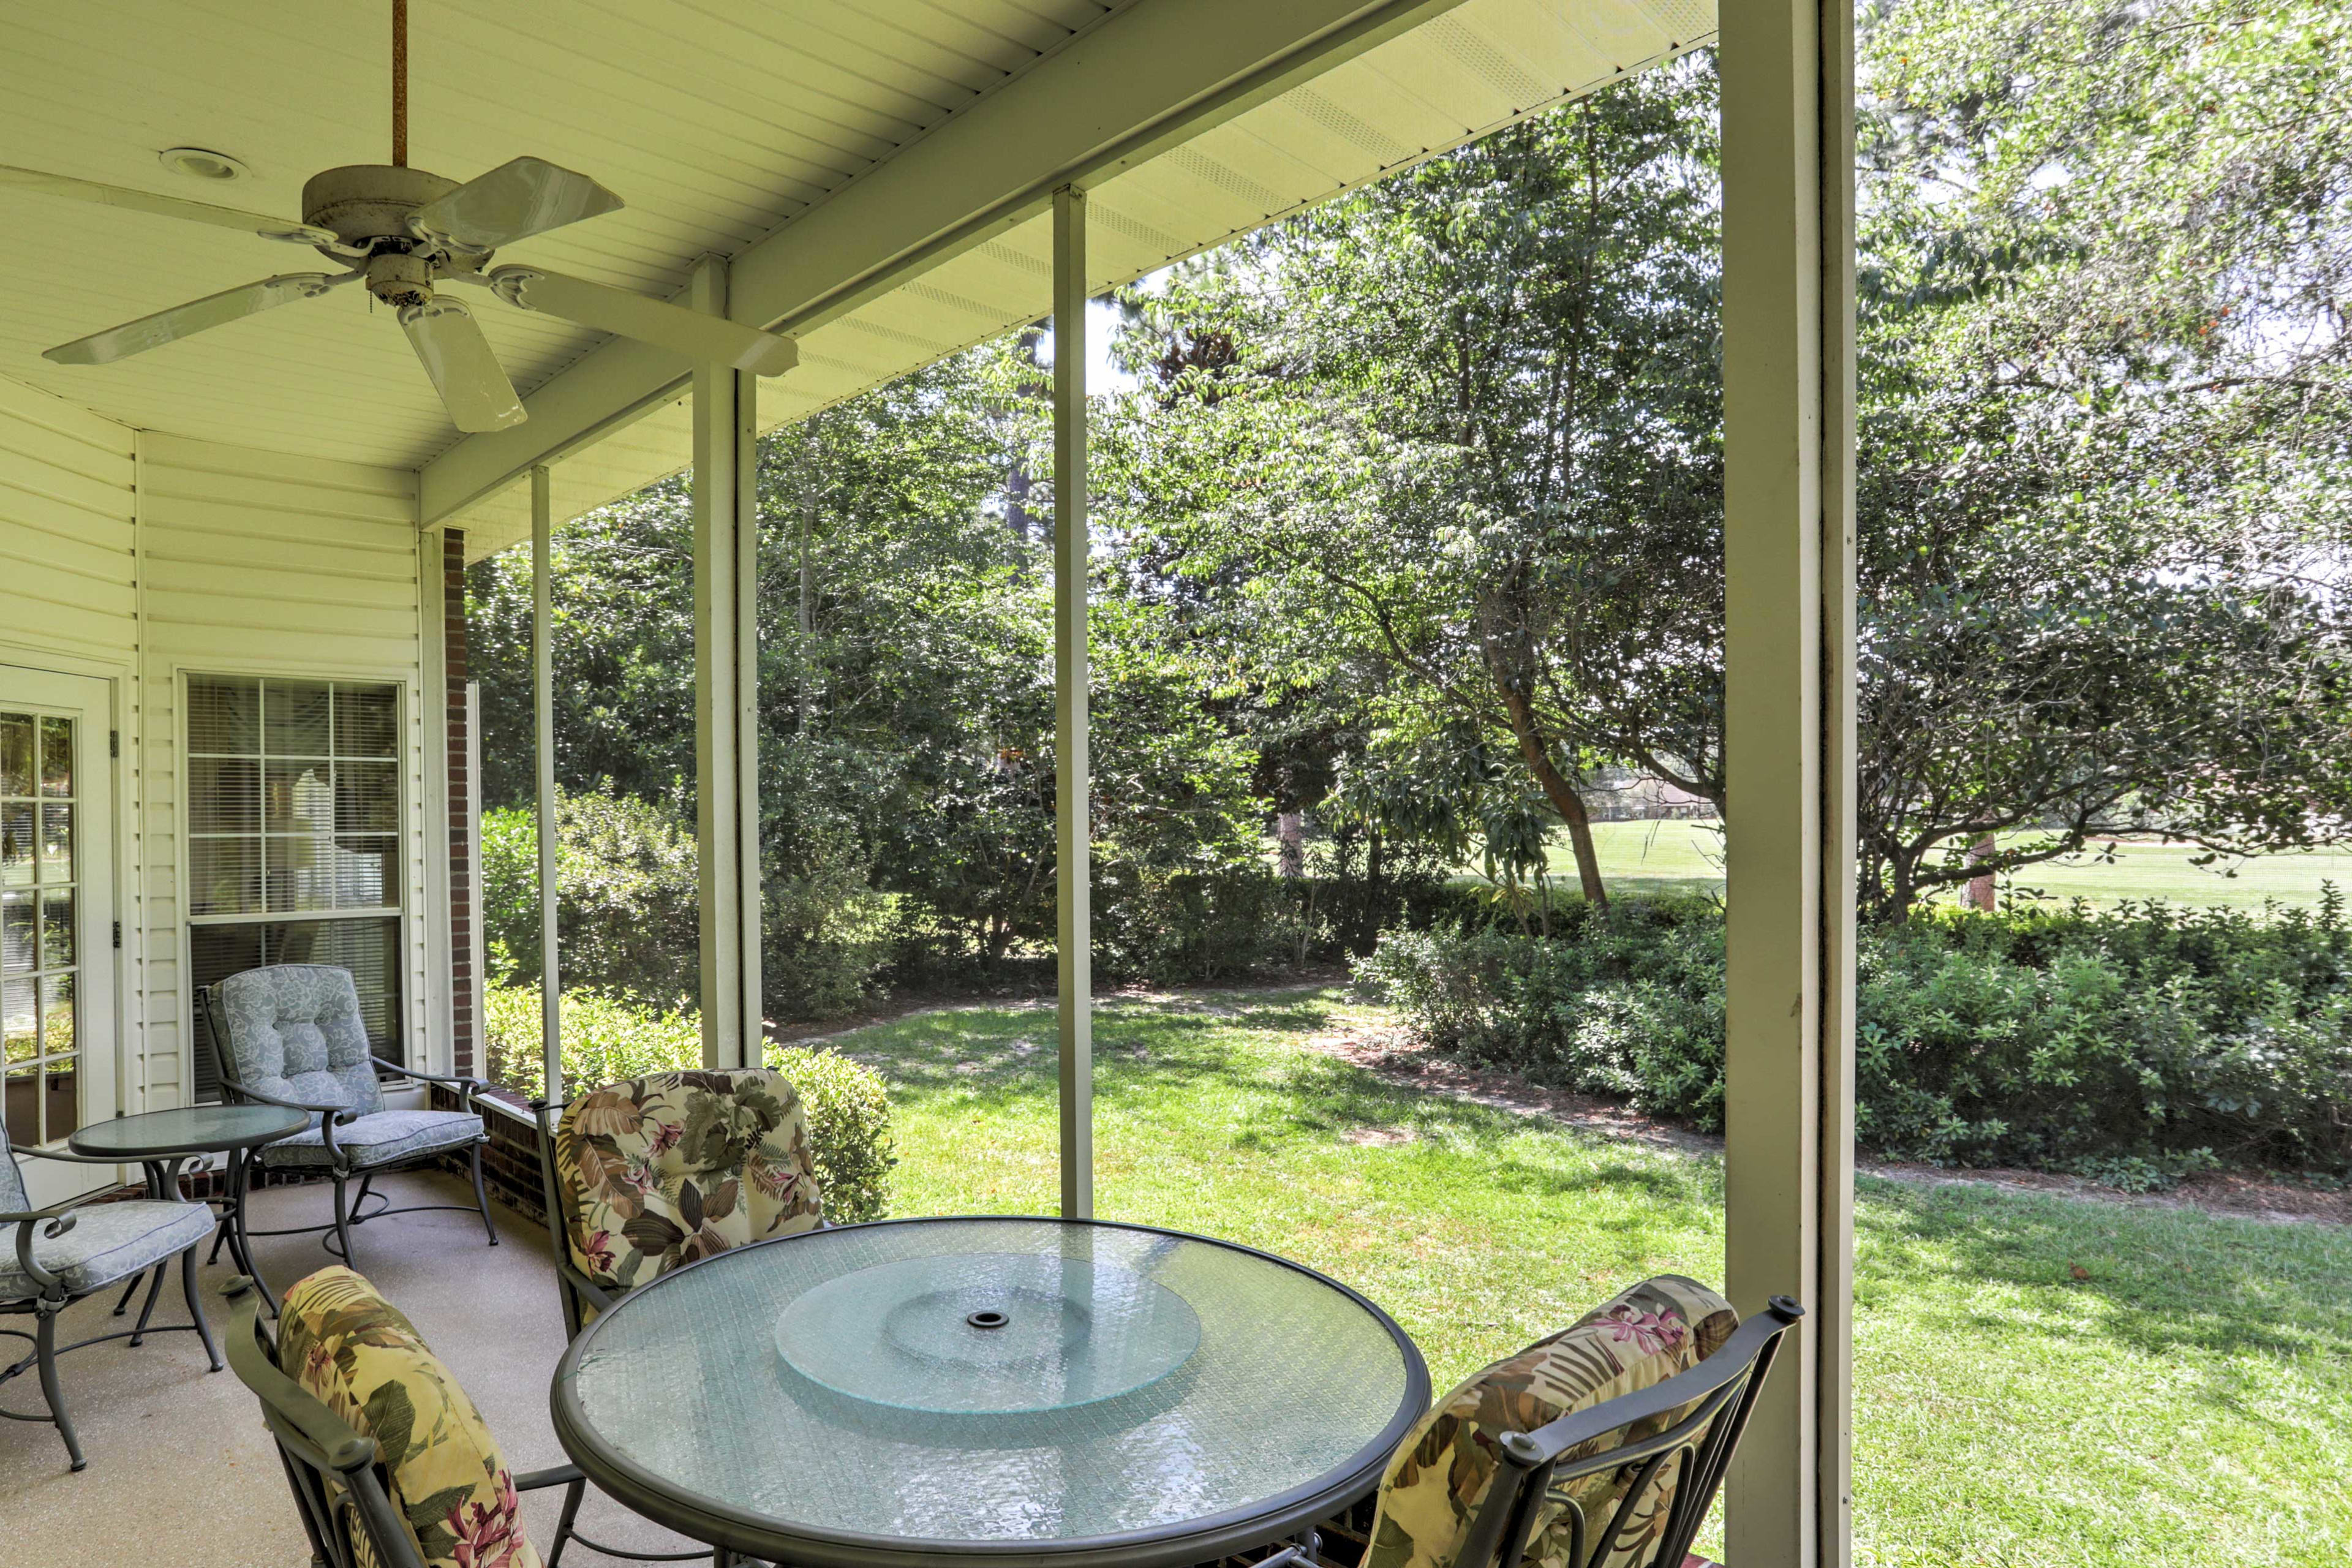 The screened-in porch is great for outdoor dining.